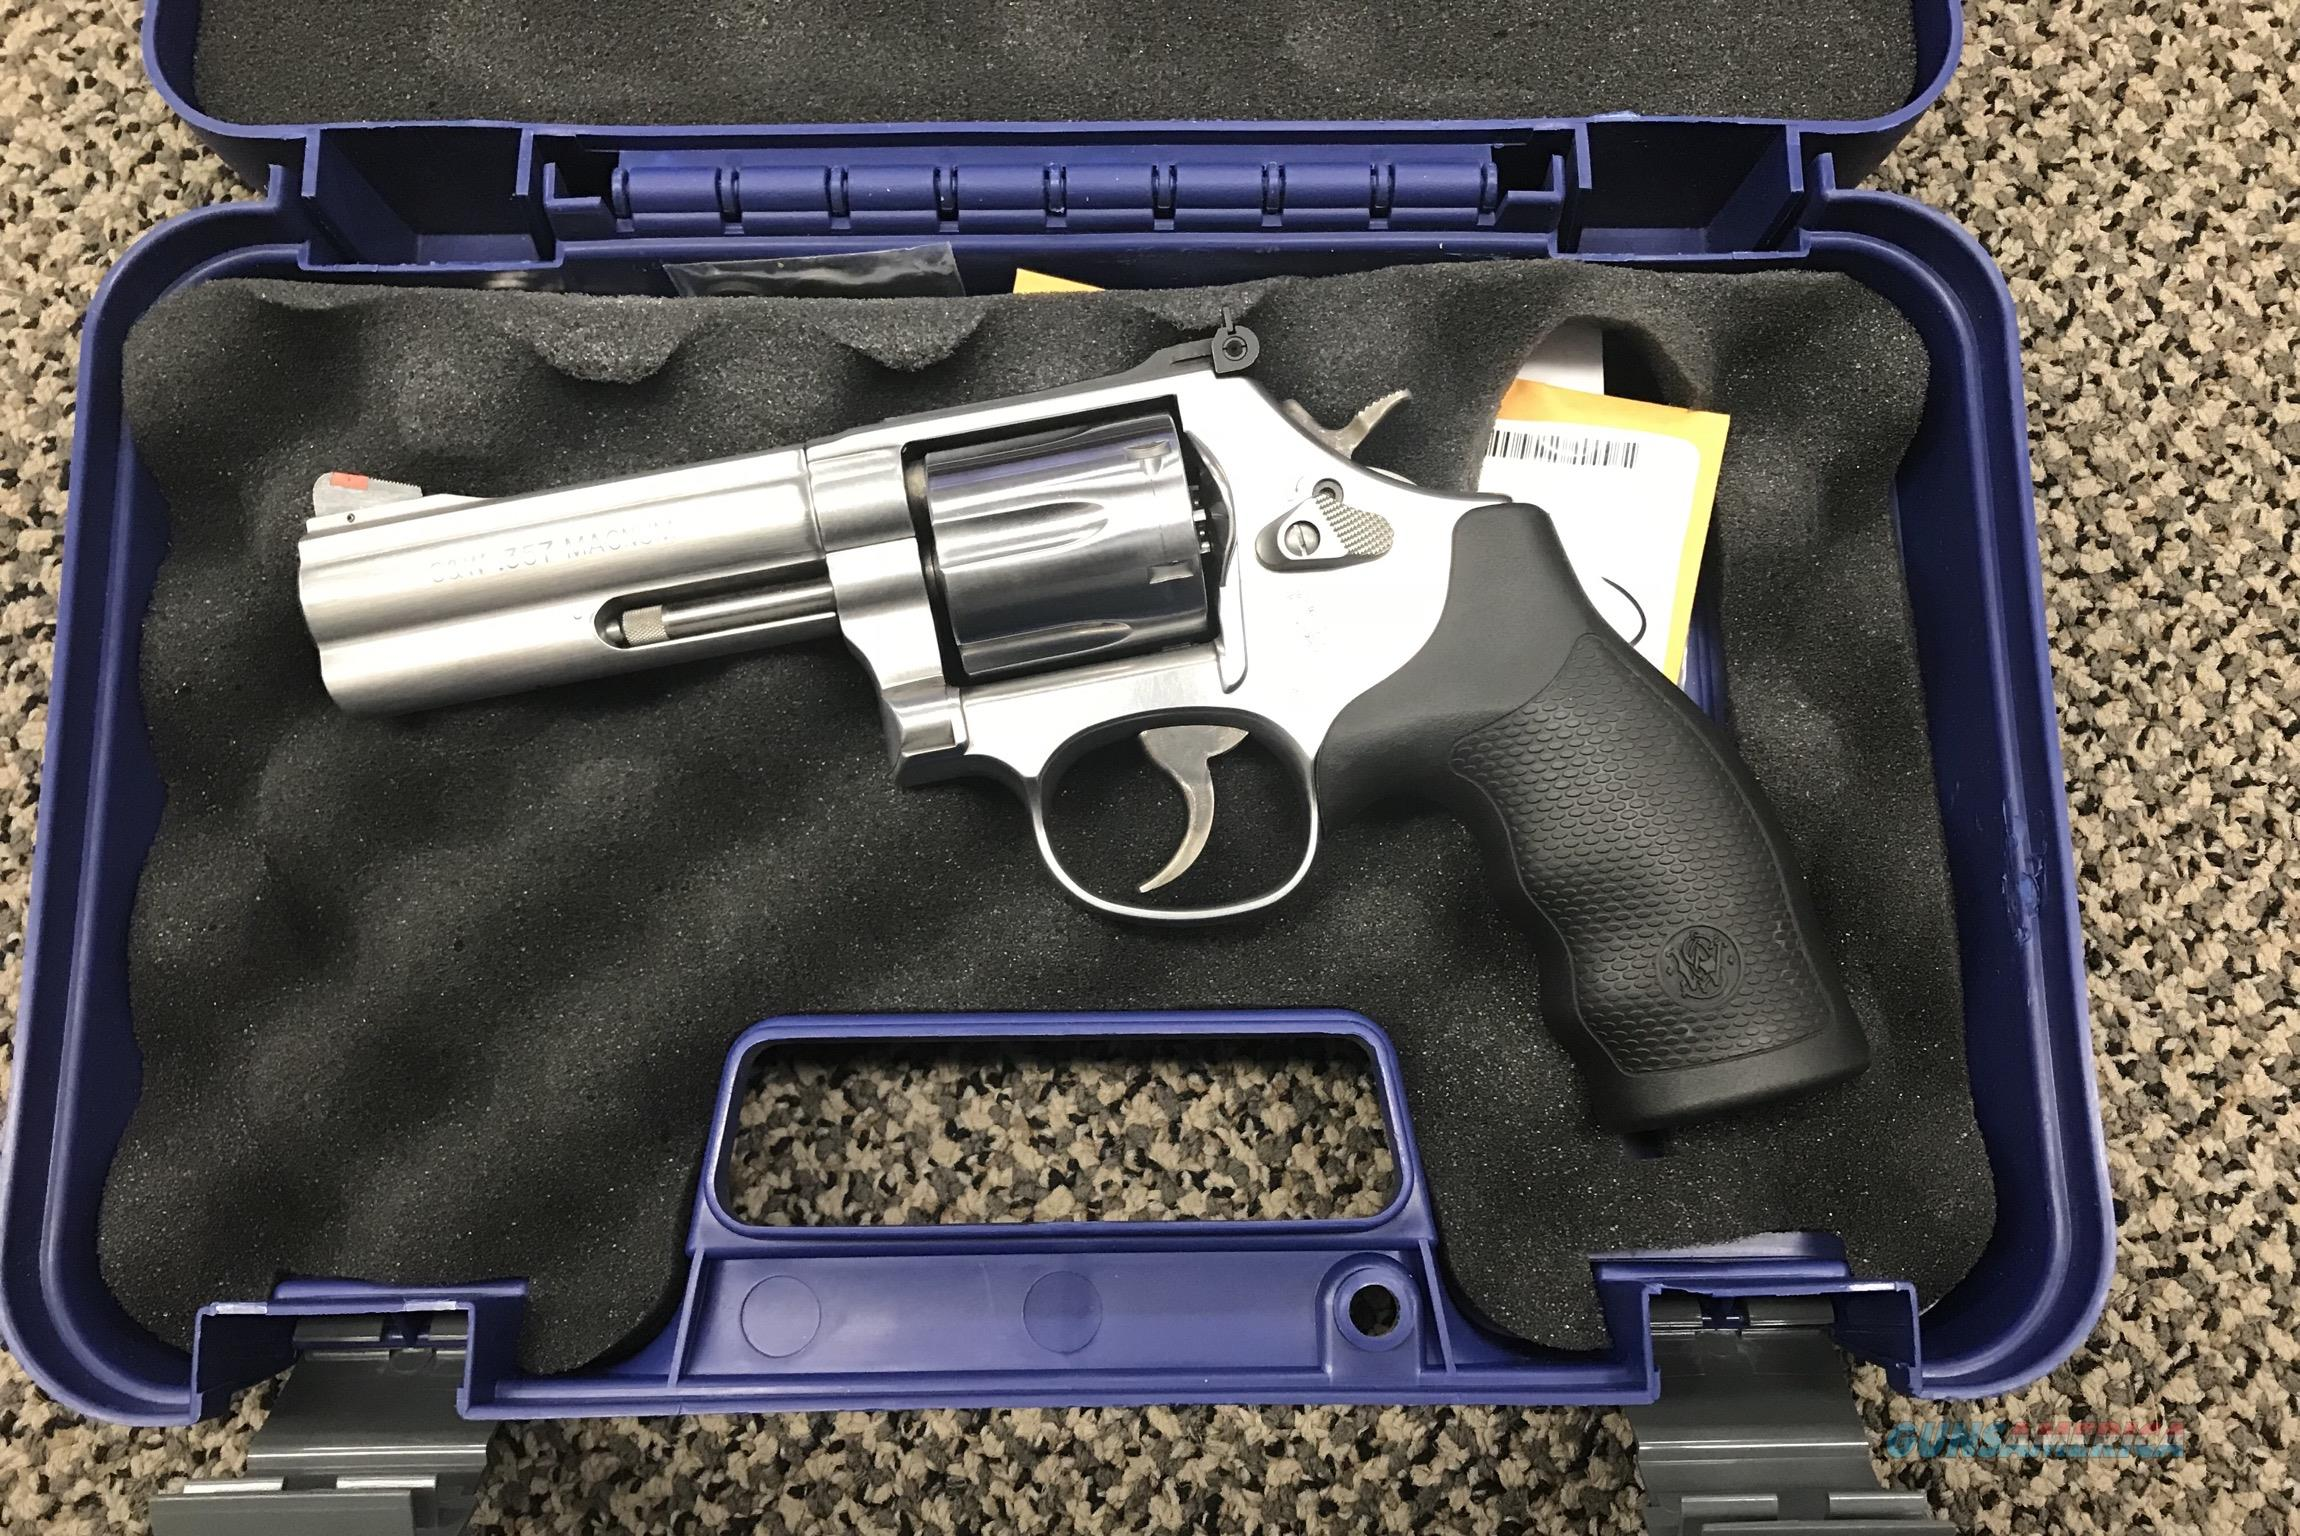 S&W MODEL 686 .357 MAGNUM 4 INCH STAINLESS MINT  Guns > Pistols > Smith & Wesson Revolvers > Full Frame Revolver